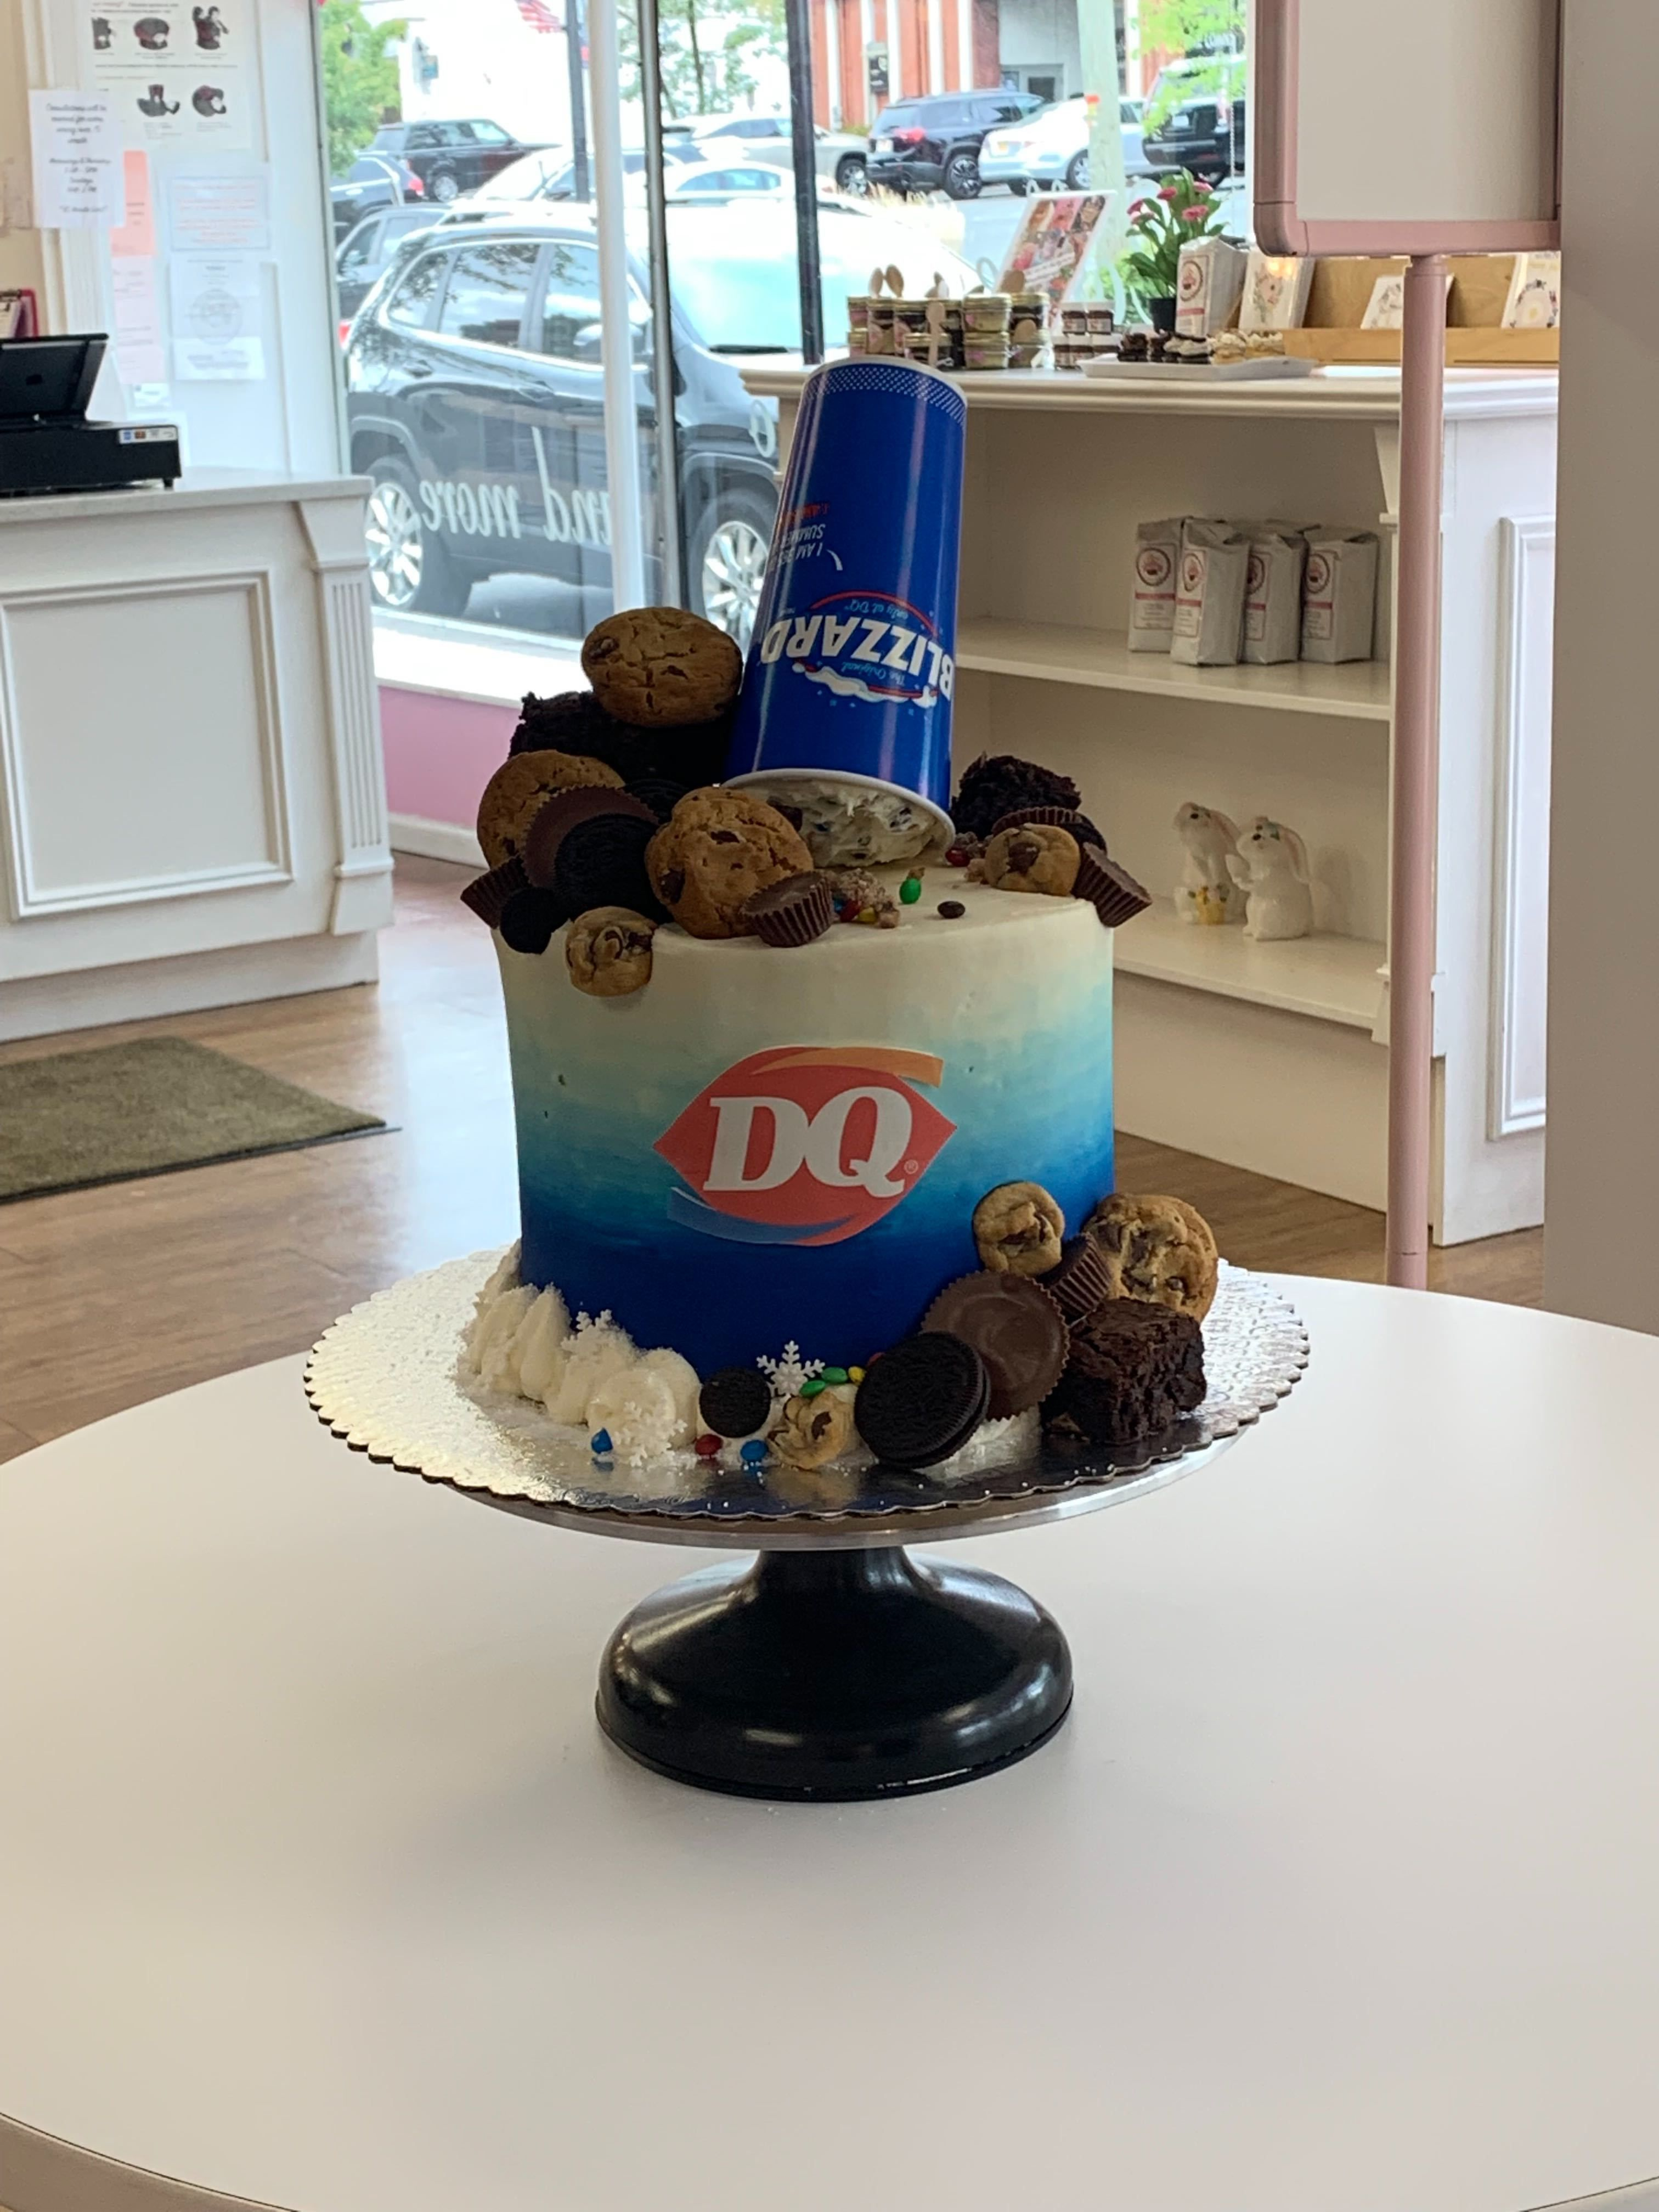 How Much Are Dairy Queen Cakes : dairy, queen, cakes, Dairy, Queen-Themed, Covered, Blizzard, Mix-Ins